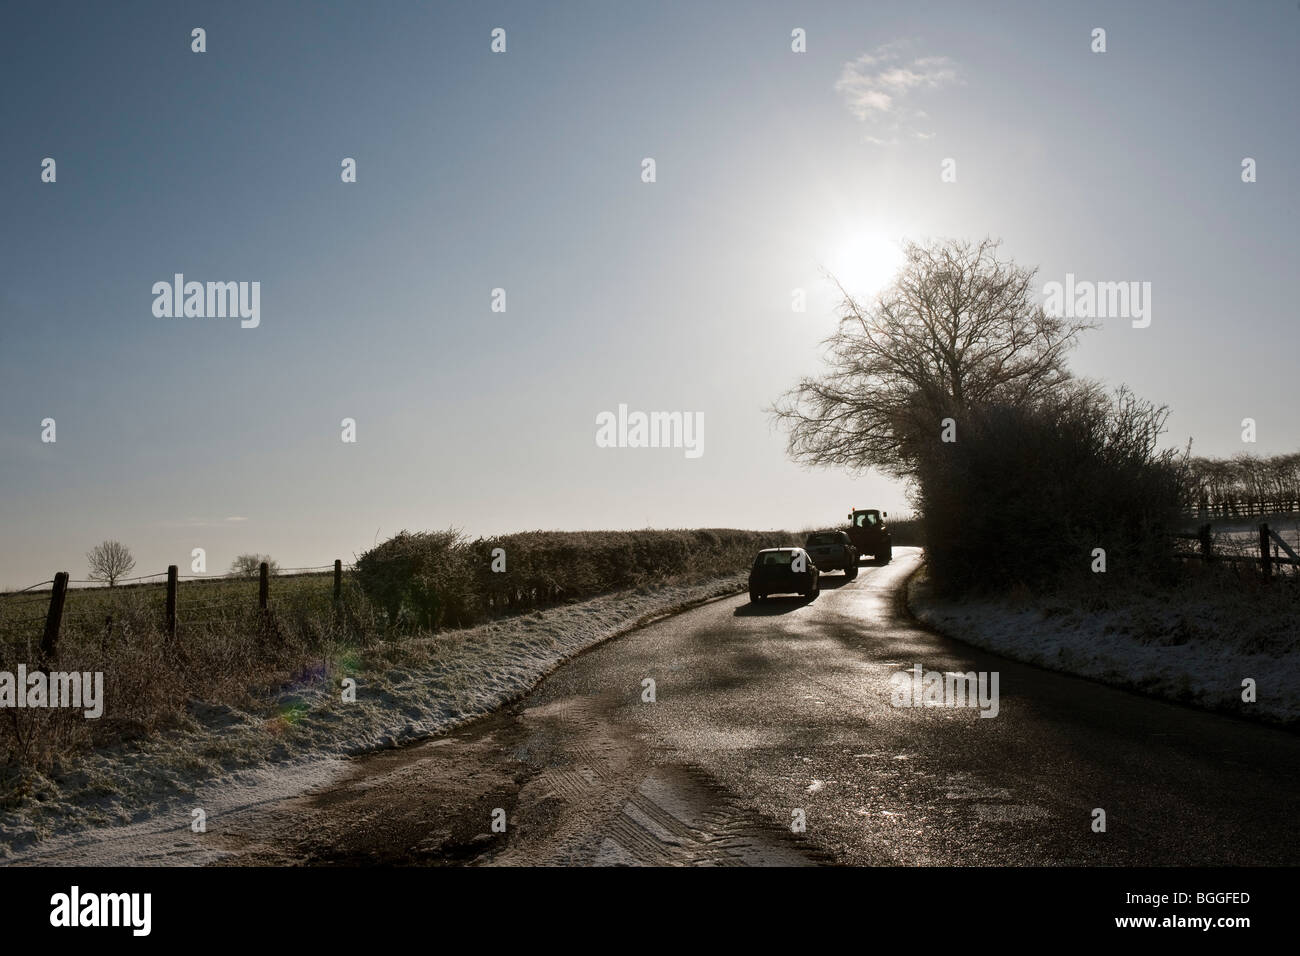 Cars traveling on road in ice and snow - Stock Image